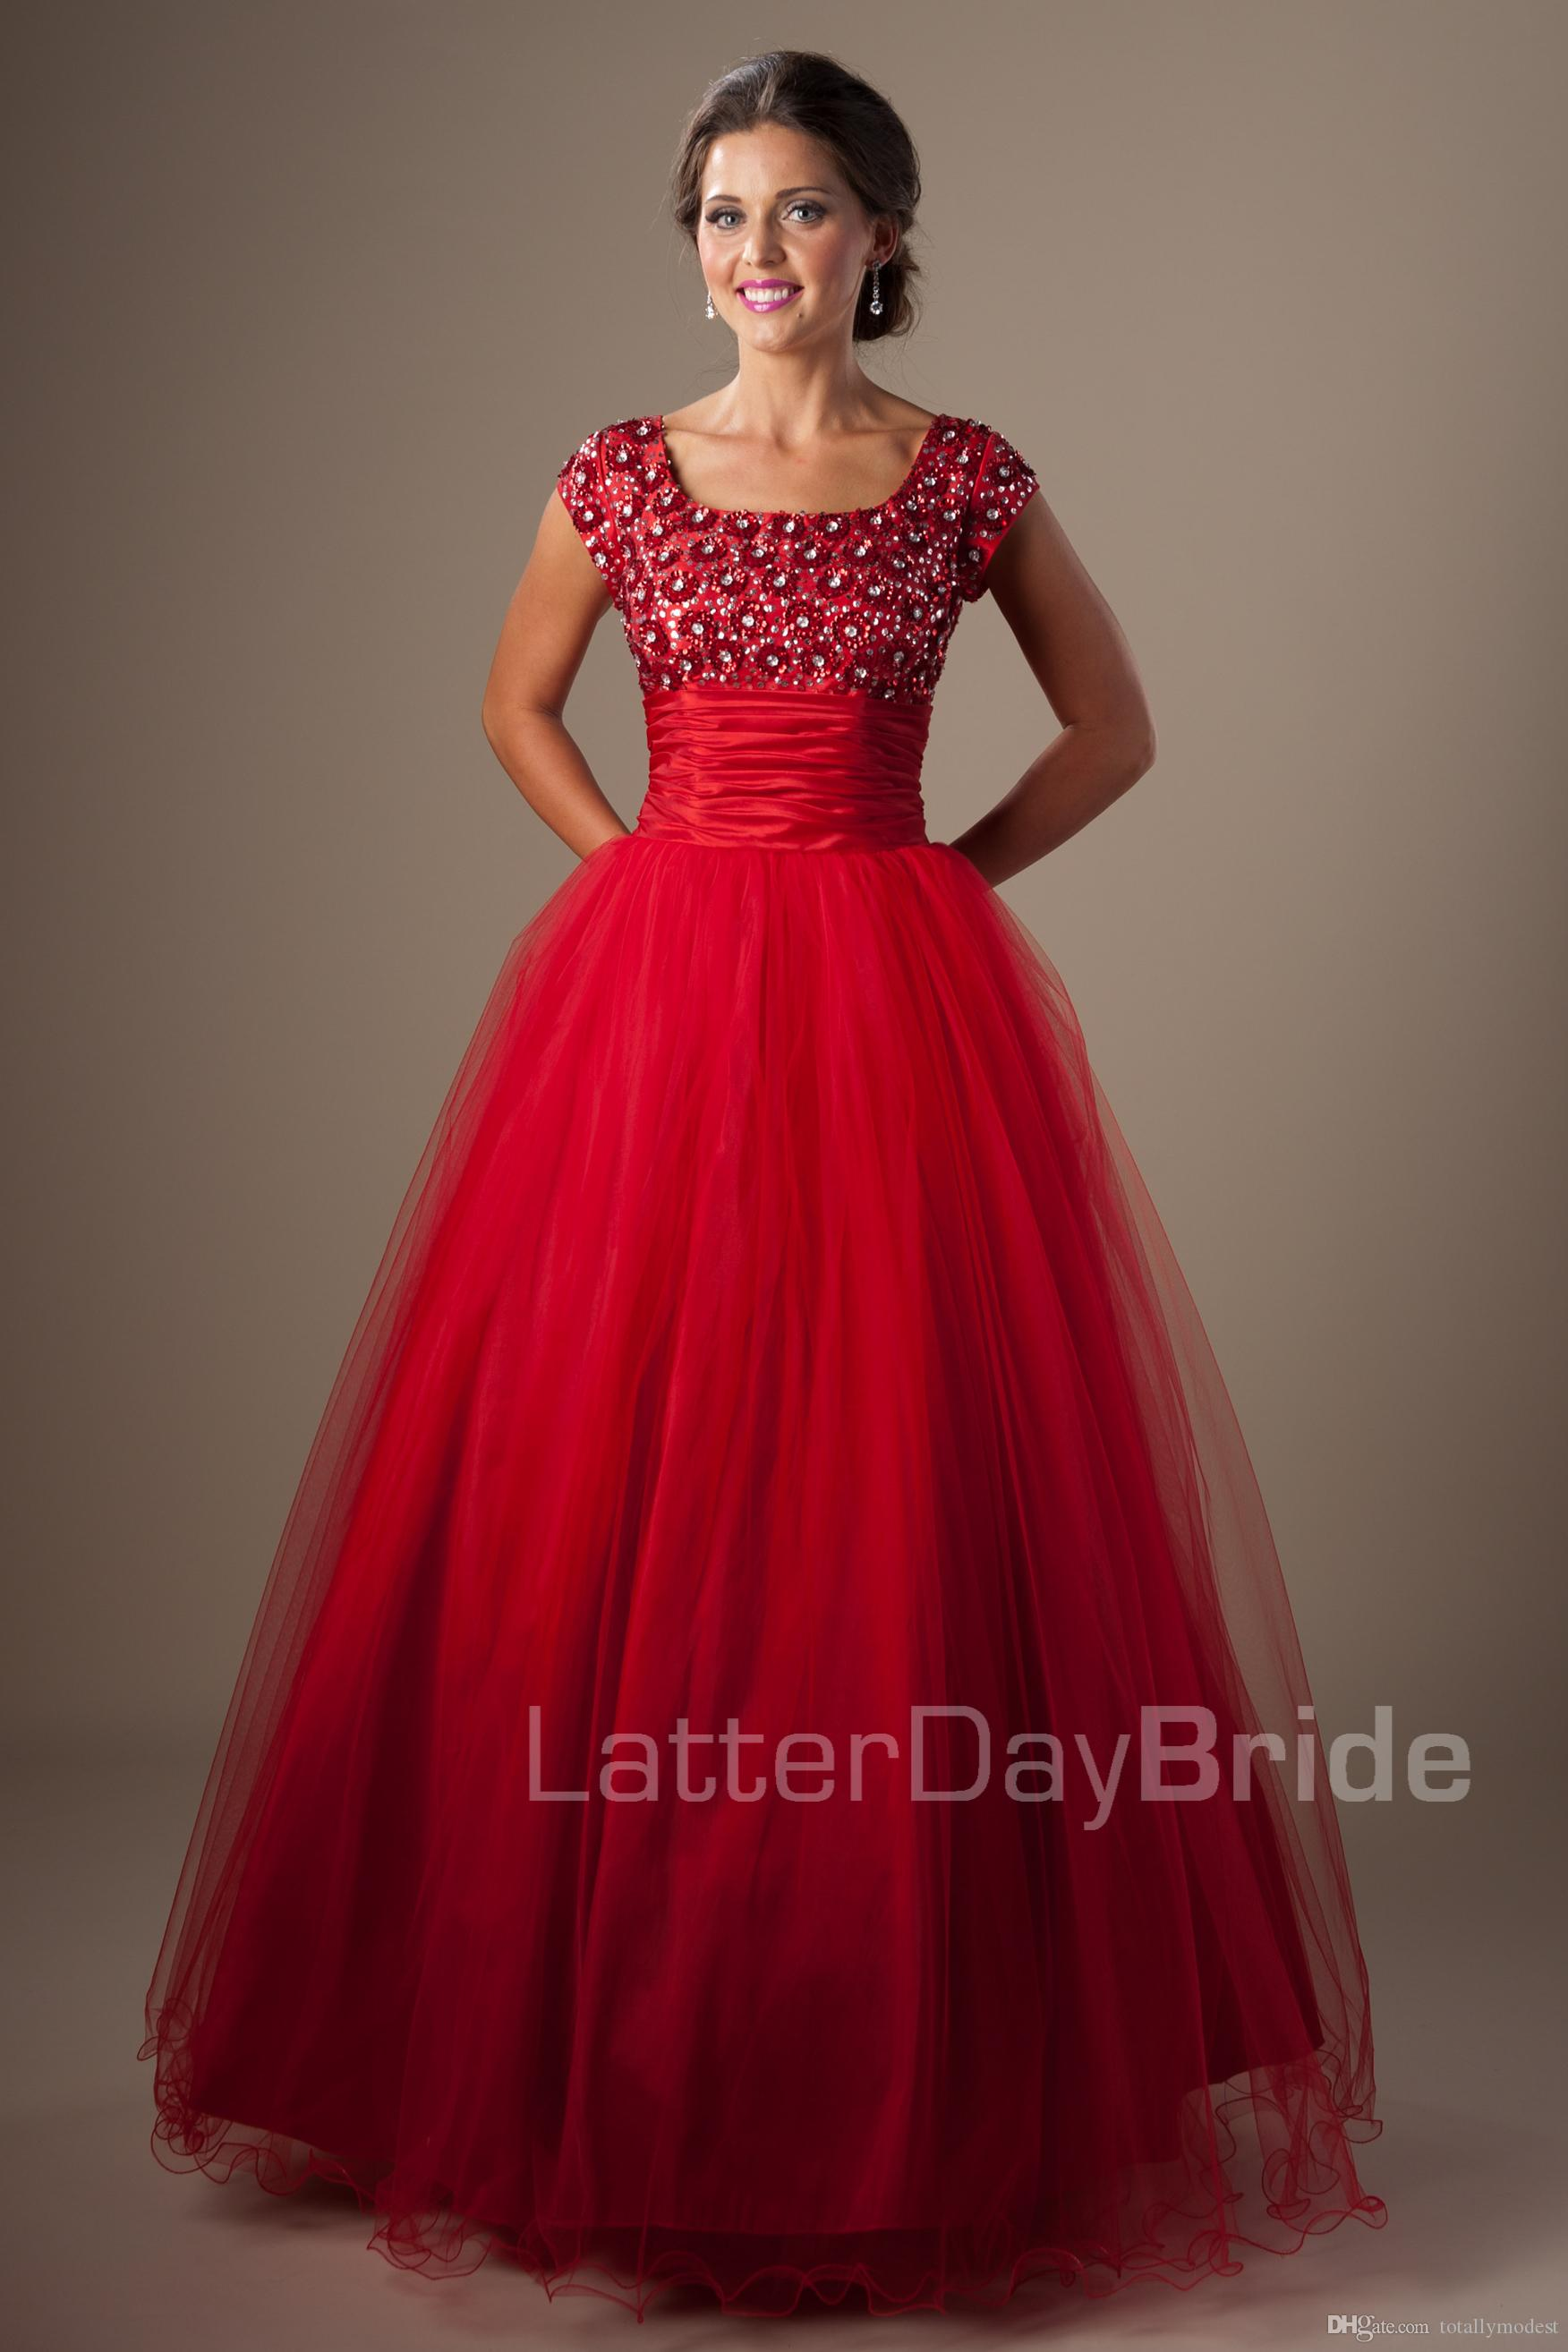 9270303eb30d Red Ball Gown Modest Prom Dresses With Cap Sleeves Square Short Sleeves Prom  Gowns 2016 Puffy A Line High School Formal Party Gowns Cheap Masquerade Prom  ...